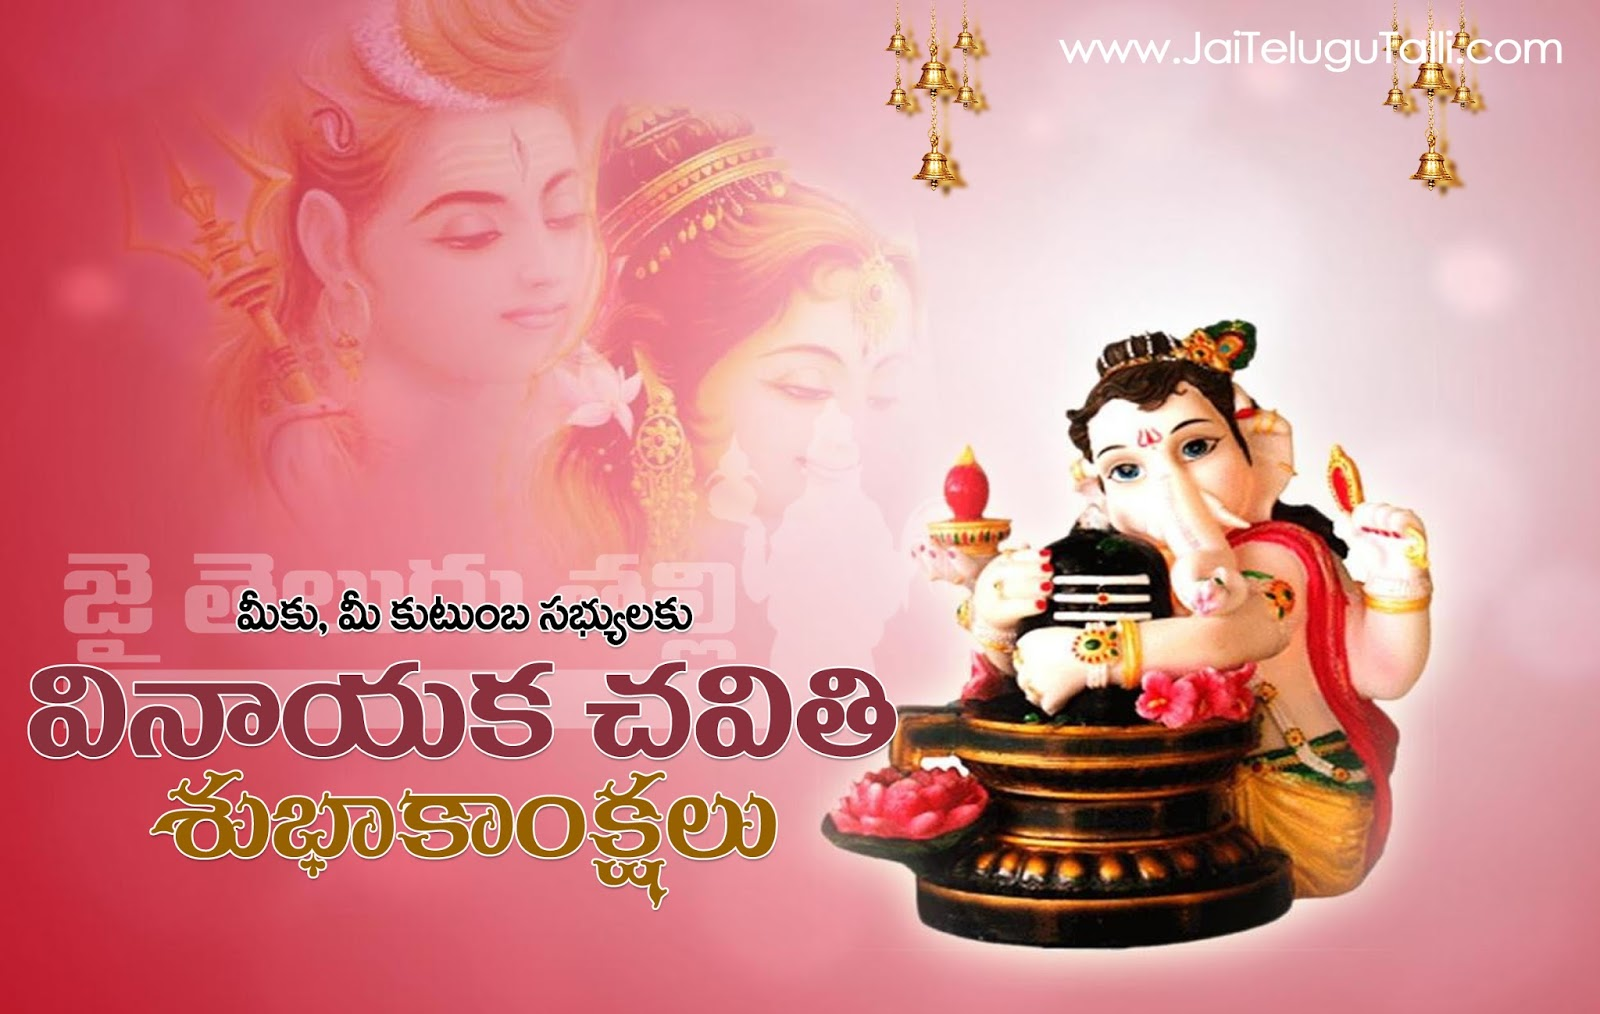 Happy Vinayaka Chavithi Wallpapers And Quotes In Telugu For Facebook